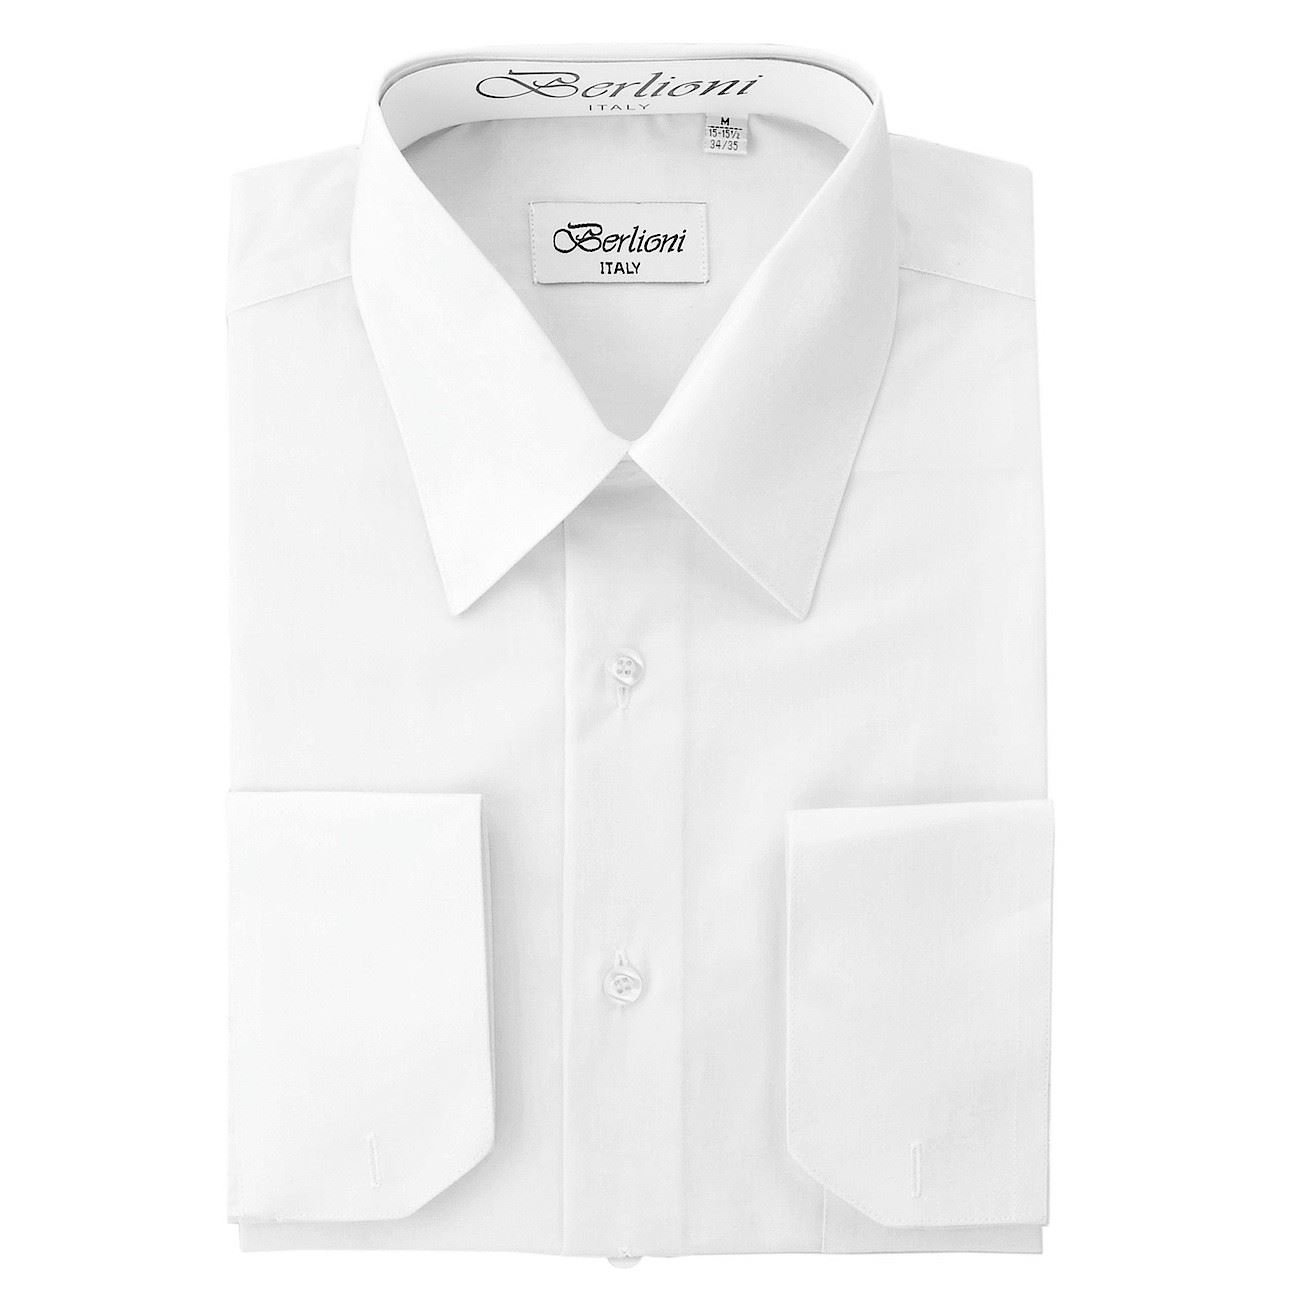 Berlioni Italy Men's Luxe Dress Shirt French Convertible Cuff Button Down Snow White